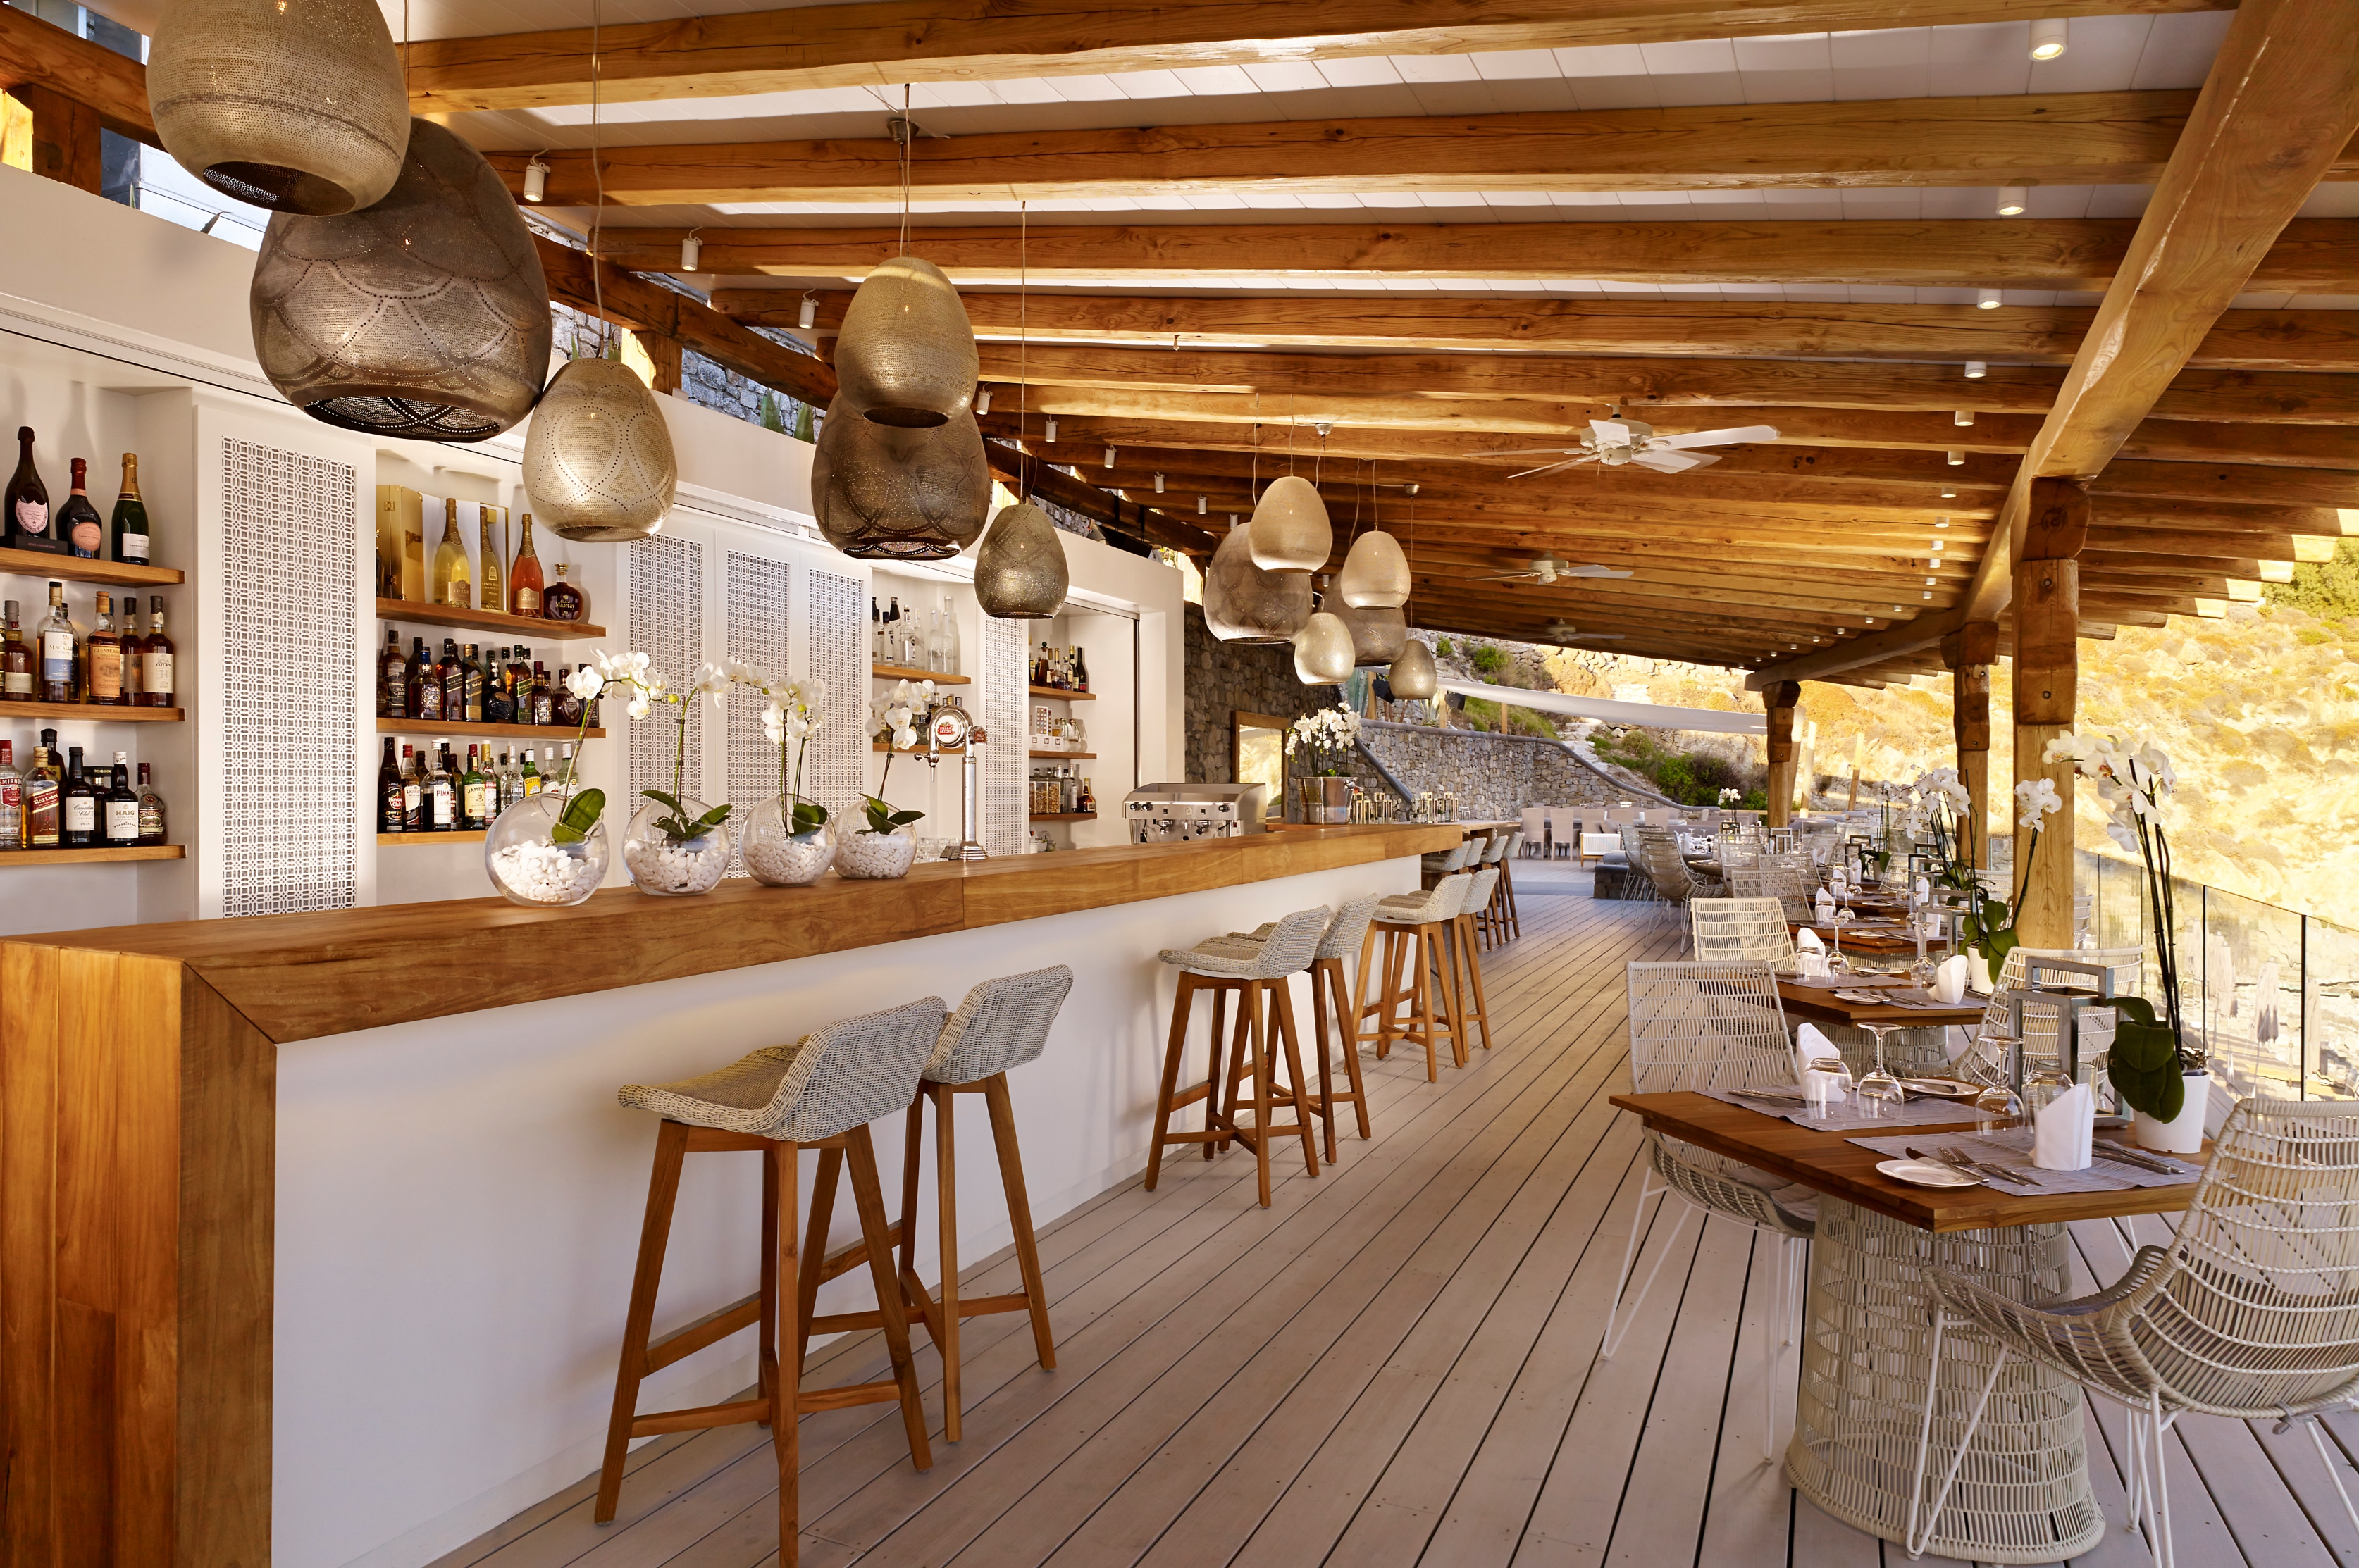 Legendary mykonos comes to life at the santa marina resort